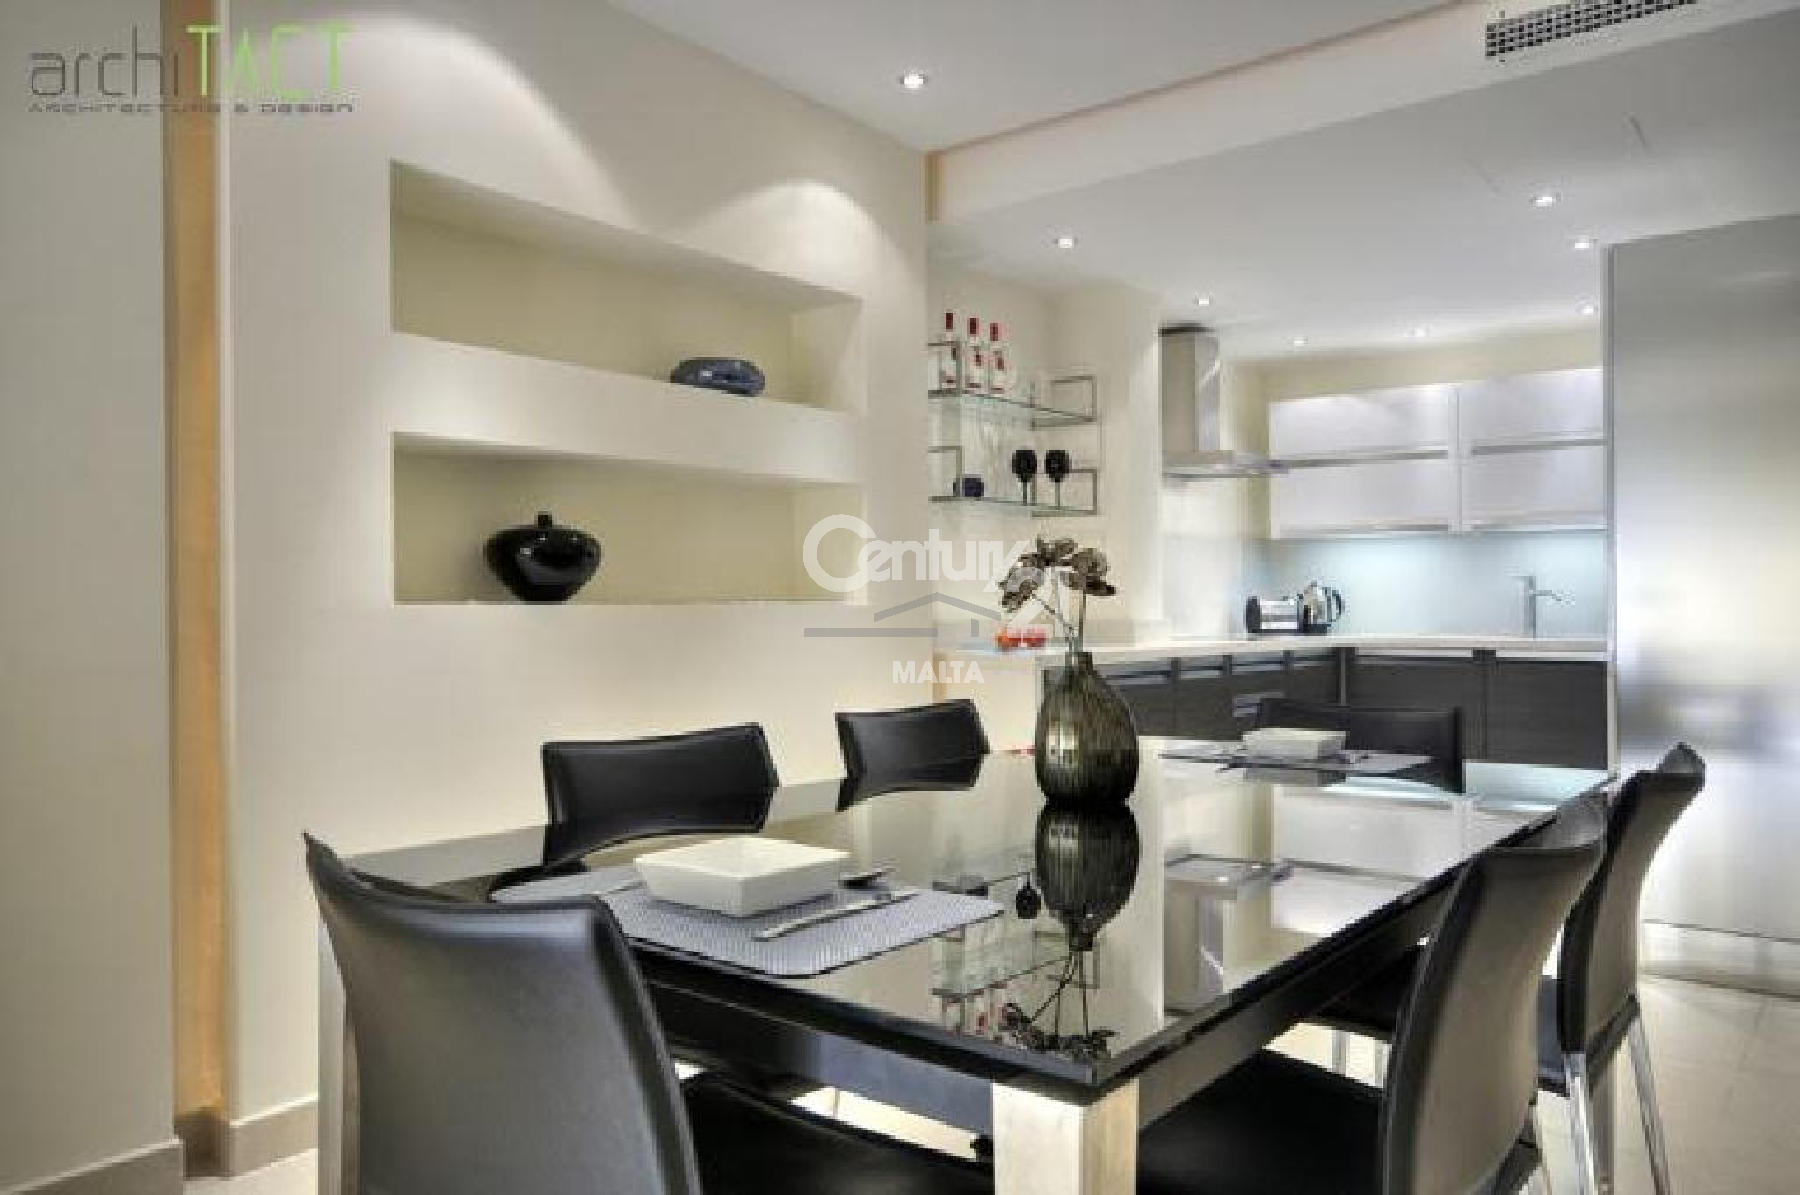 013CF20972–Furnished Apartment